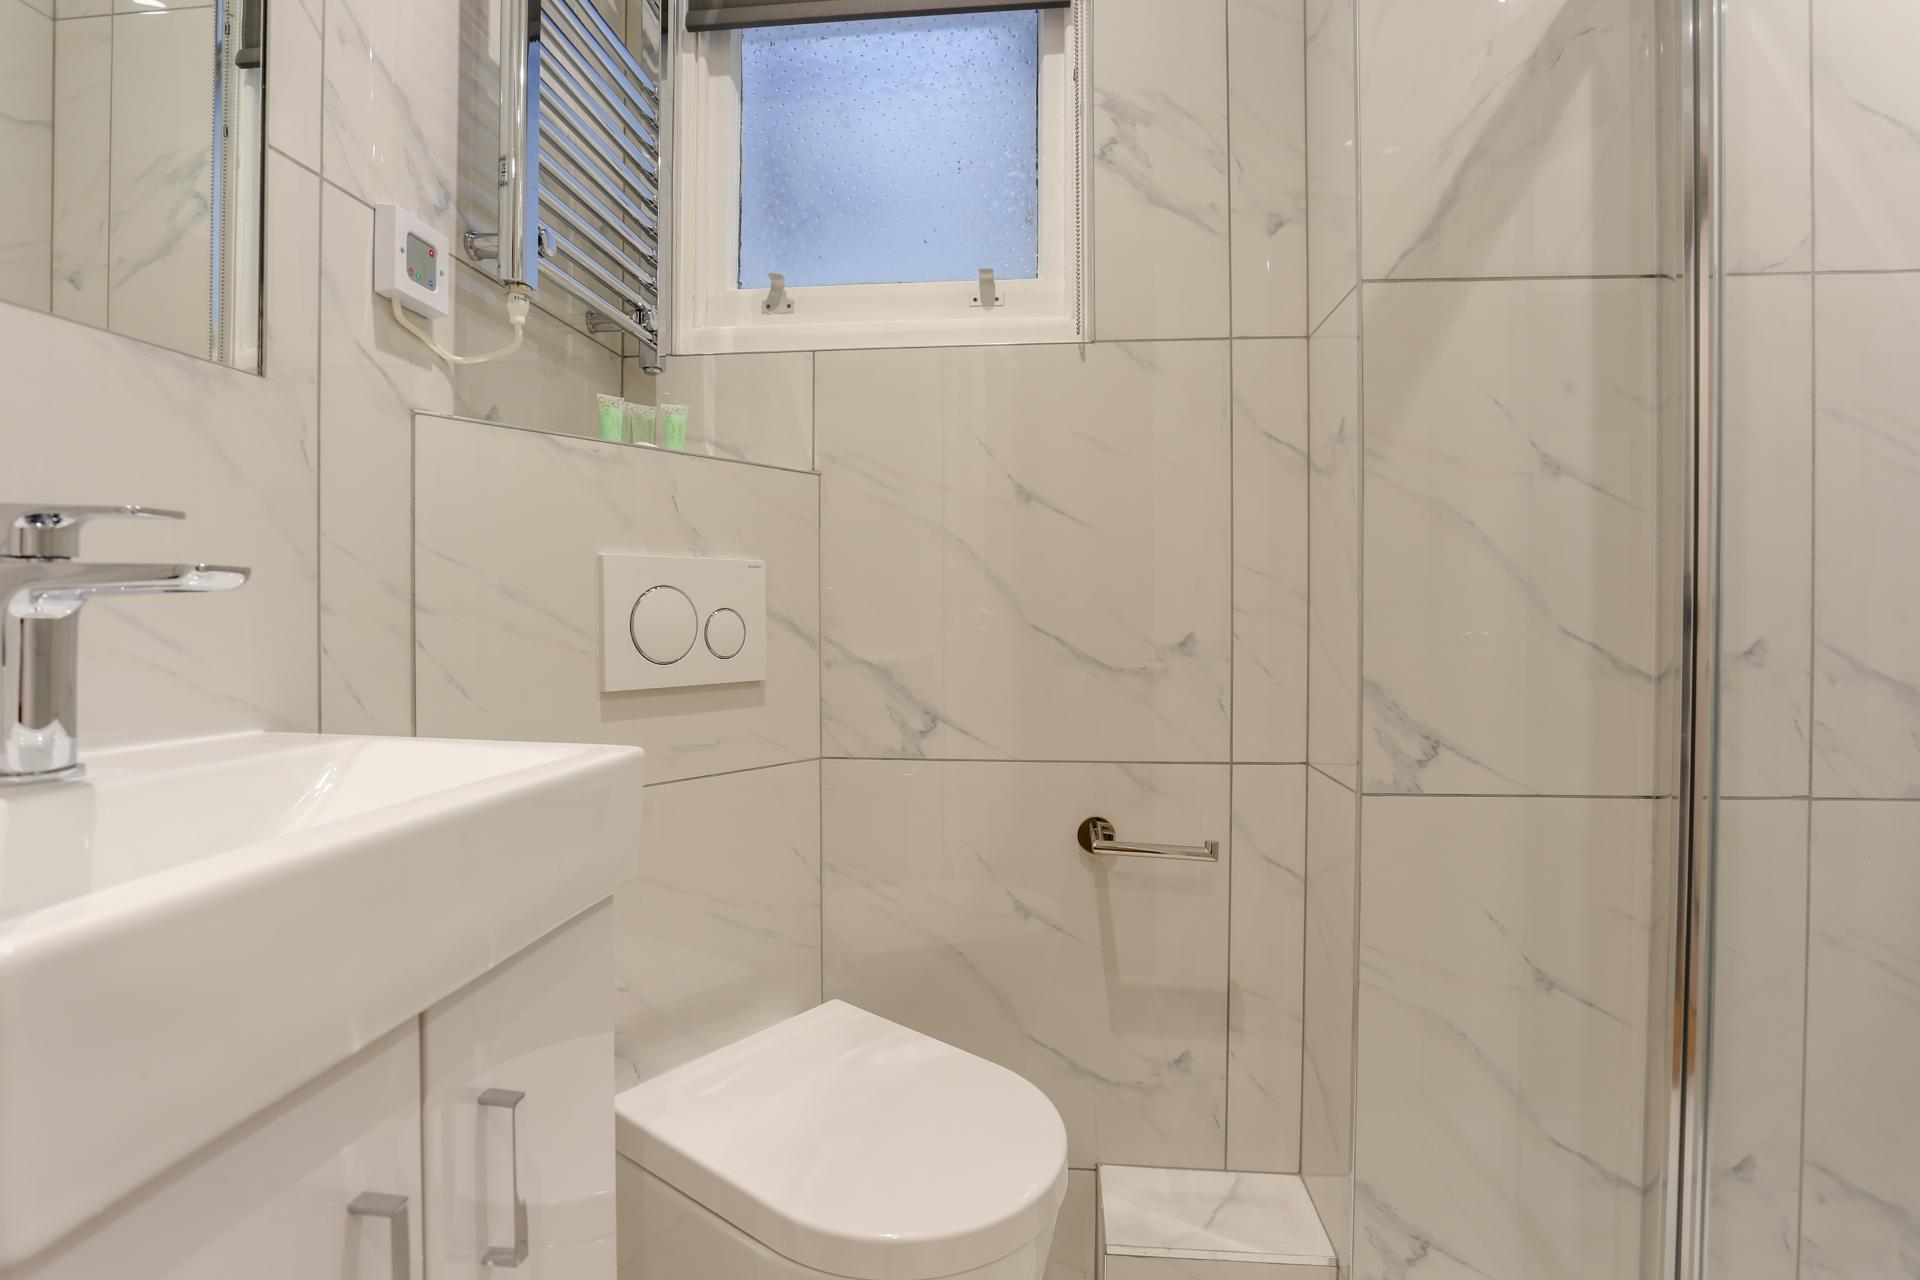 Toilet at Queensborough Terrace, Bayswater, London - Citybase Apartments